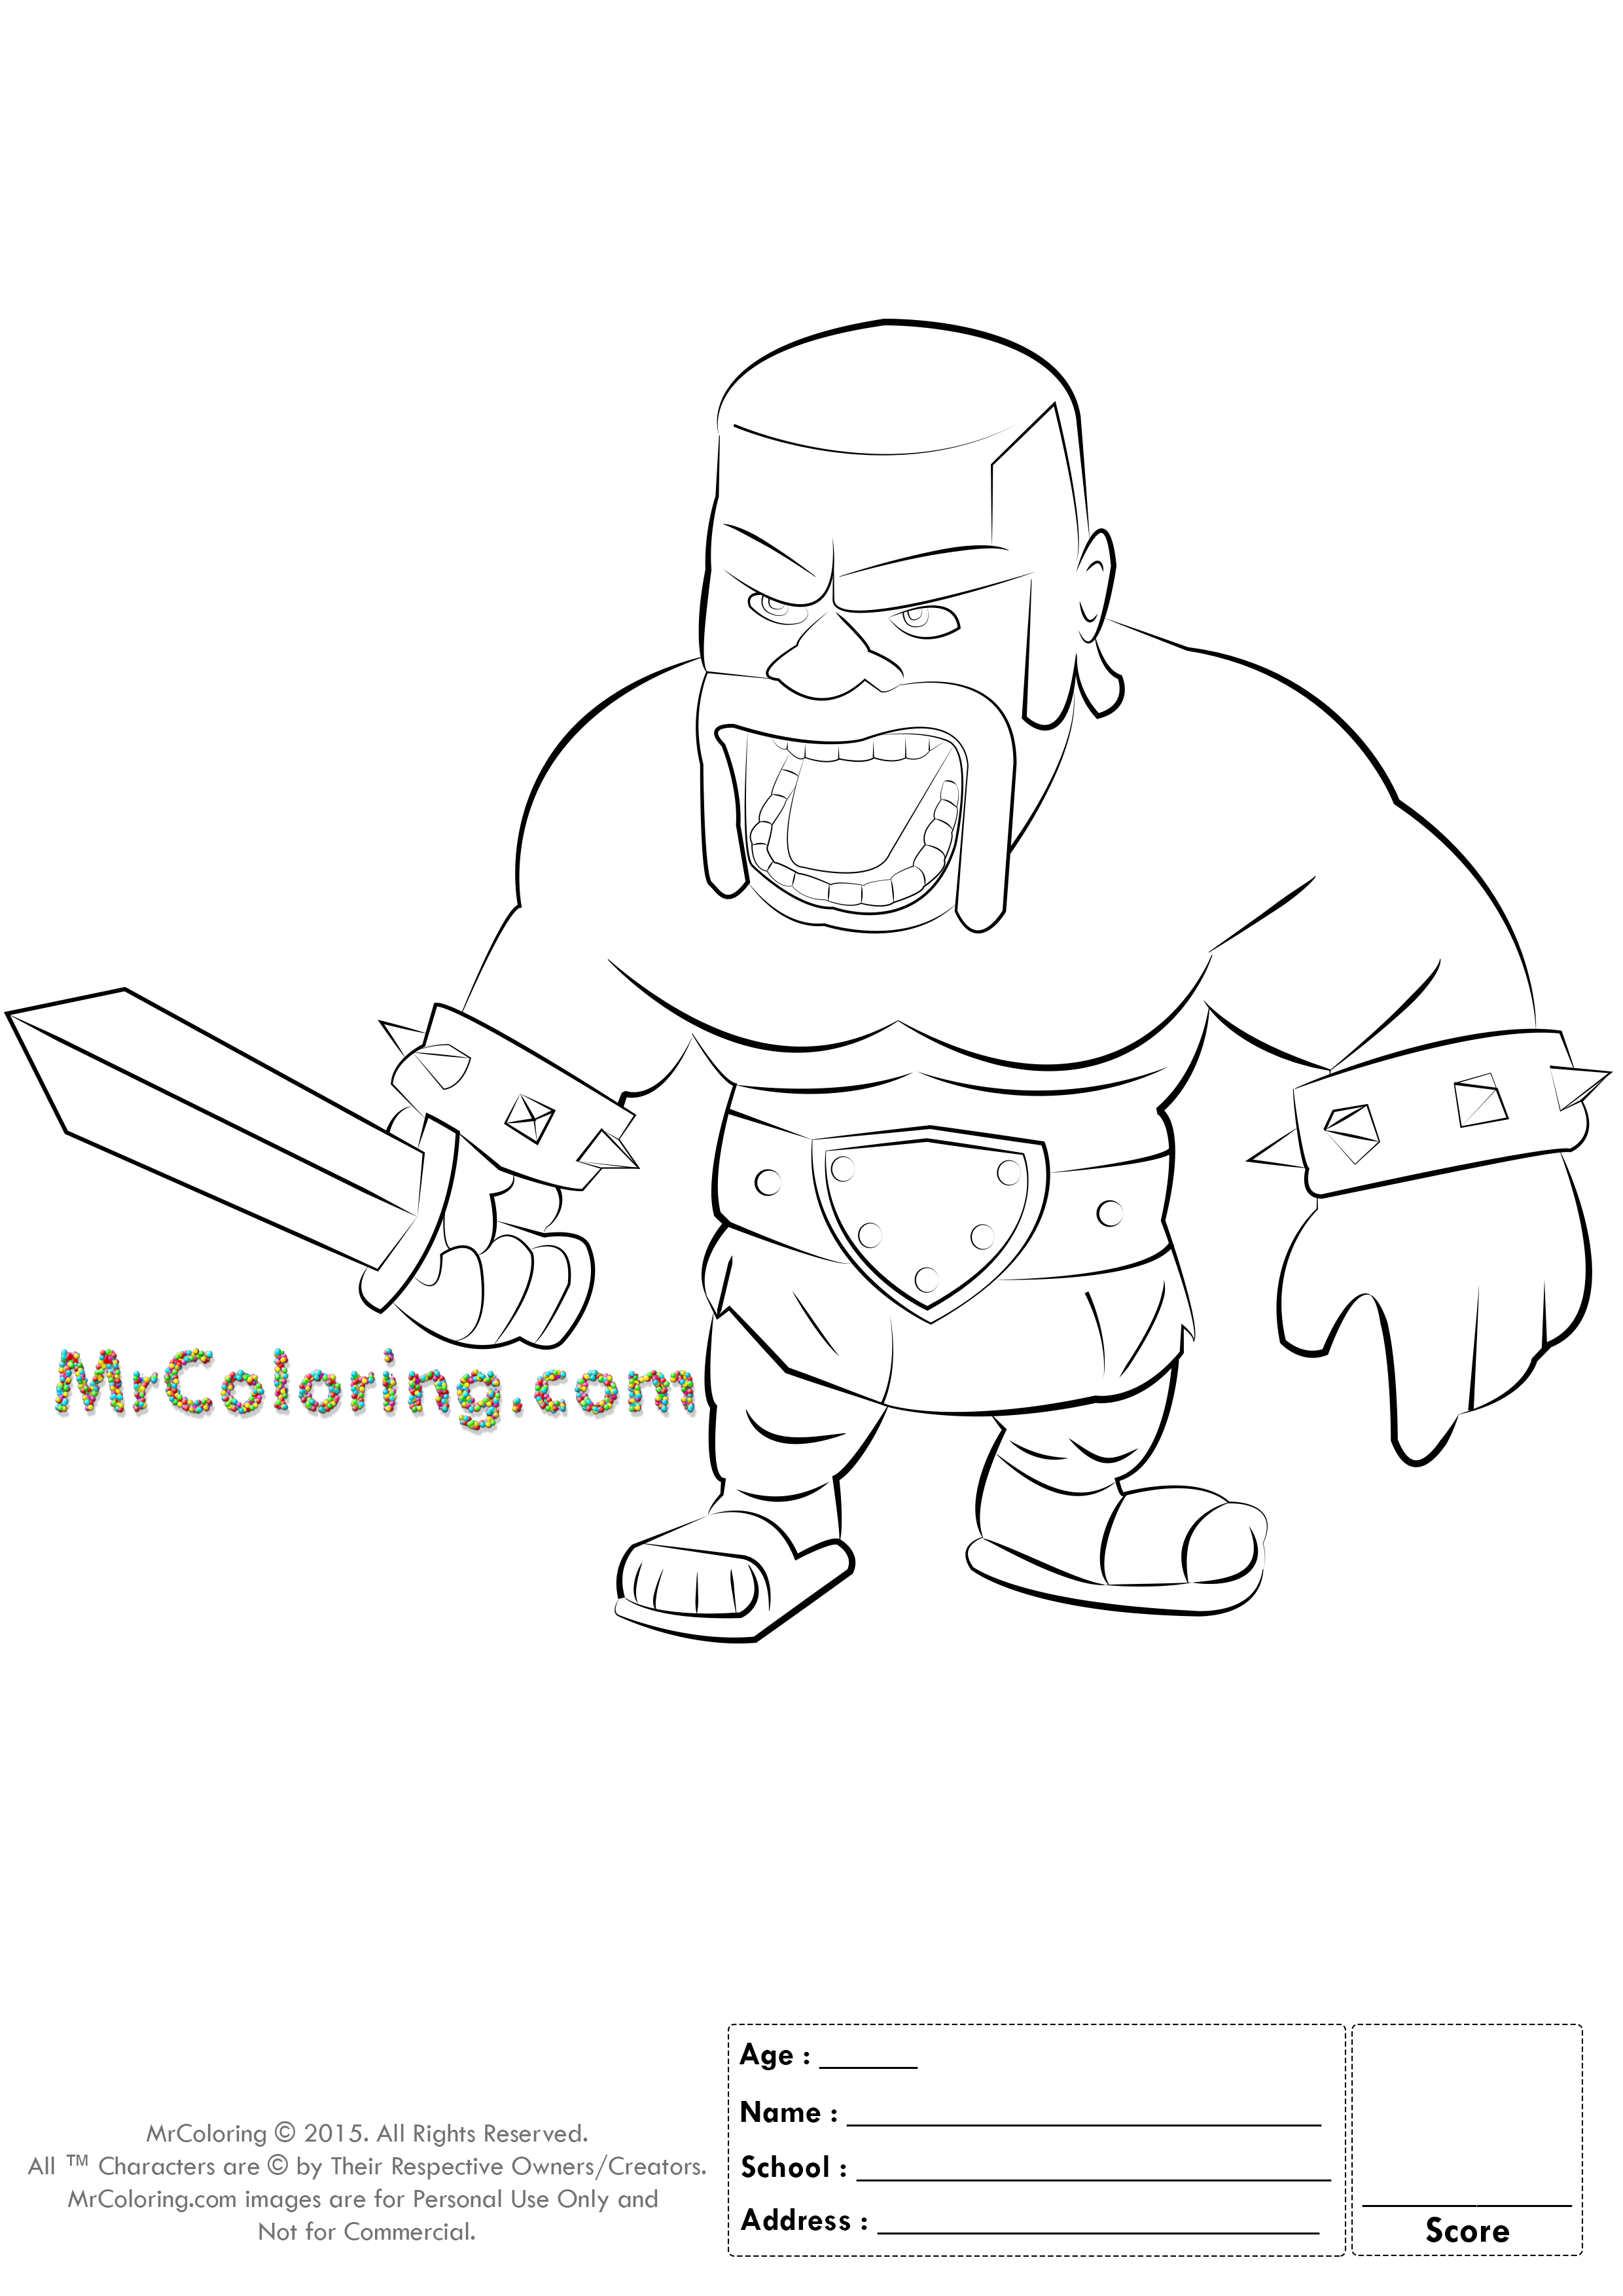 Coloring page xbox - Free Printable Clash Of Clans Barbarian Coloring Pages 1